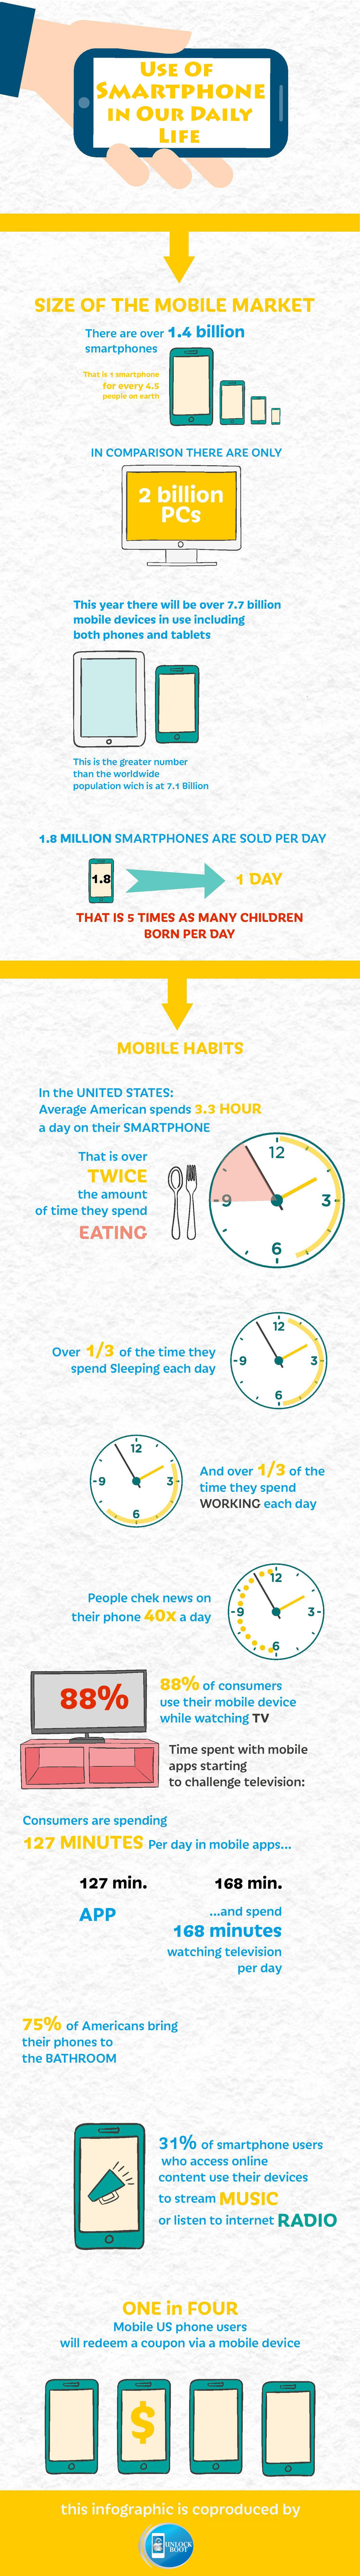 Use of Smartphone in Our Daily Life #infographic